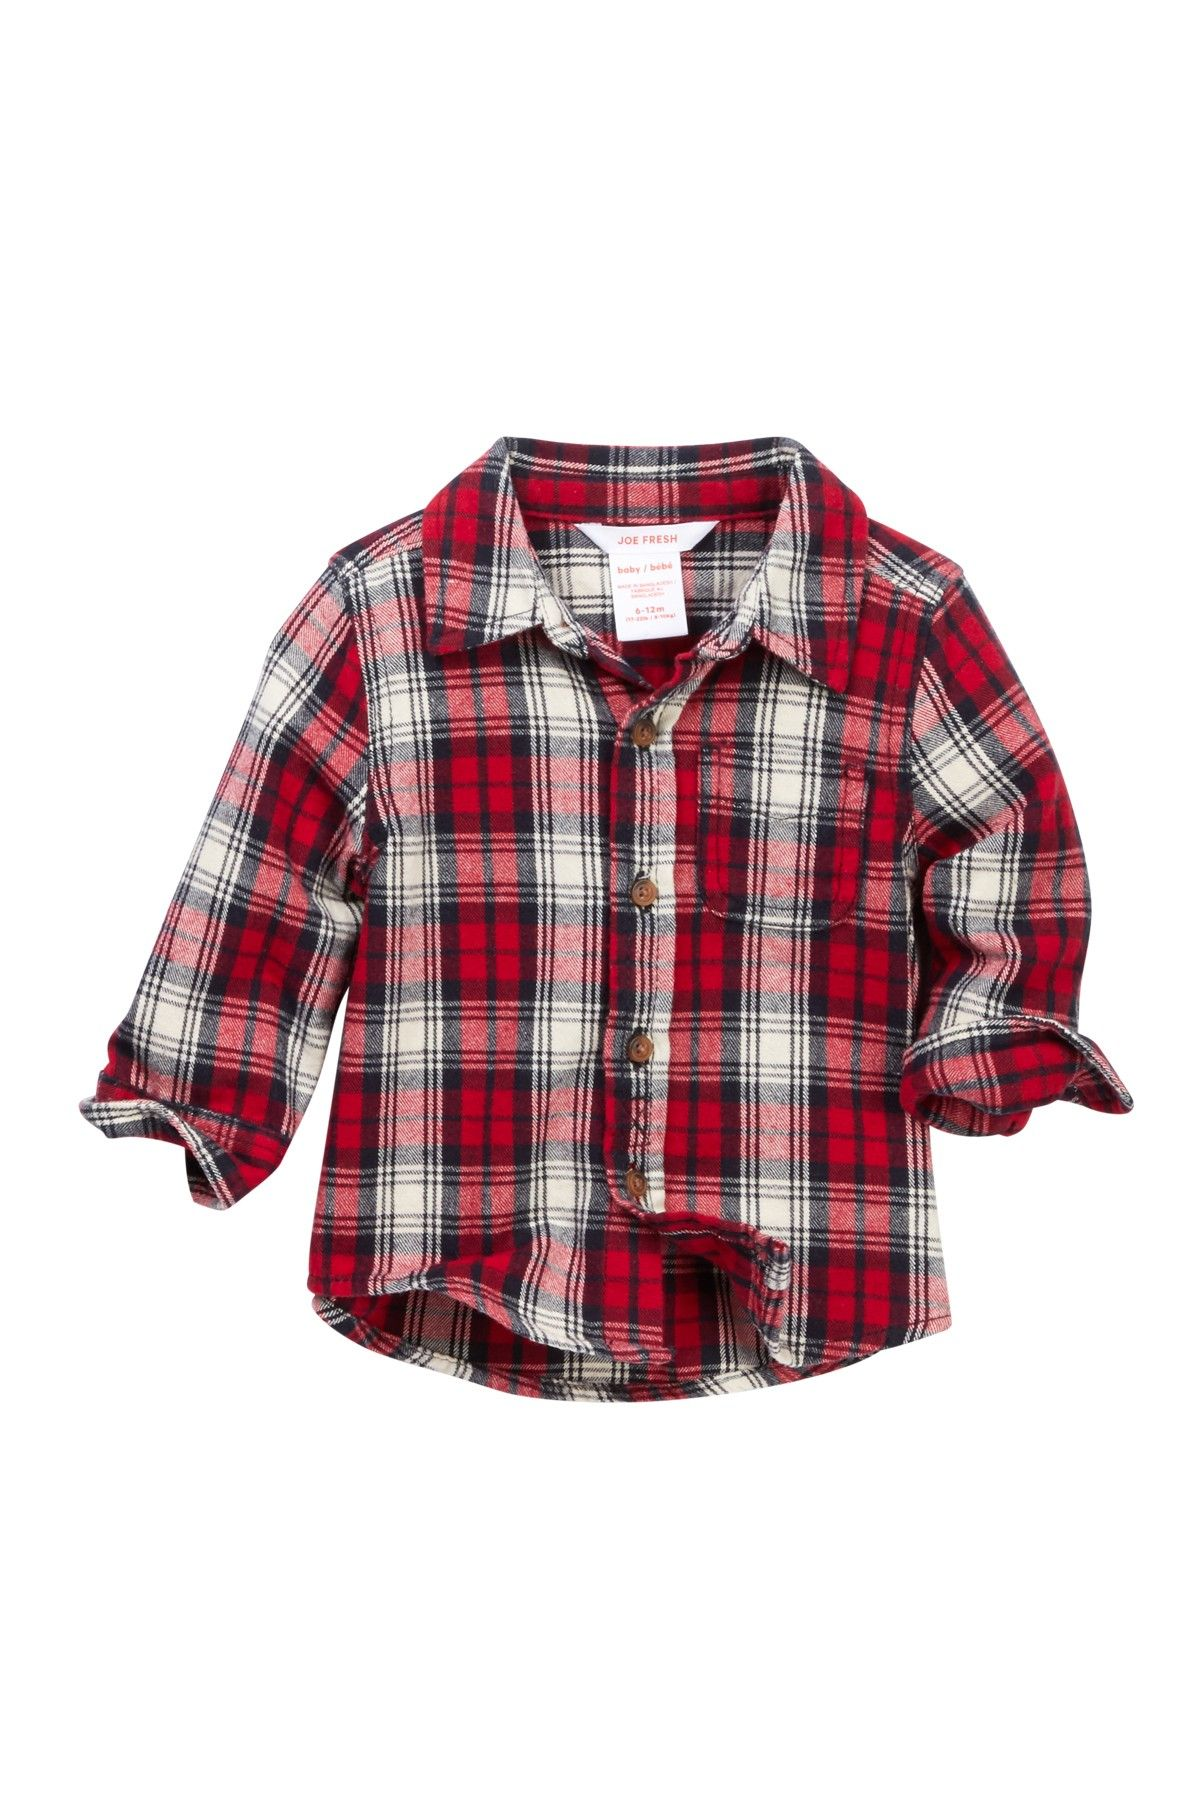 Flannel shirt for baby boy  Flannel Shirt Baby Boys M  Flannel shirts Flannels and Free